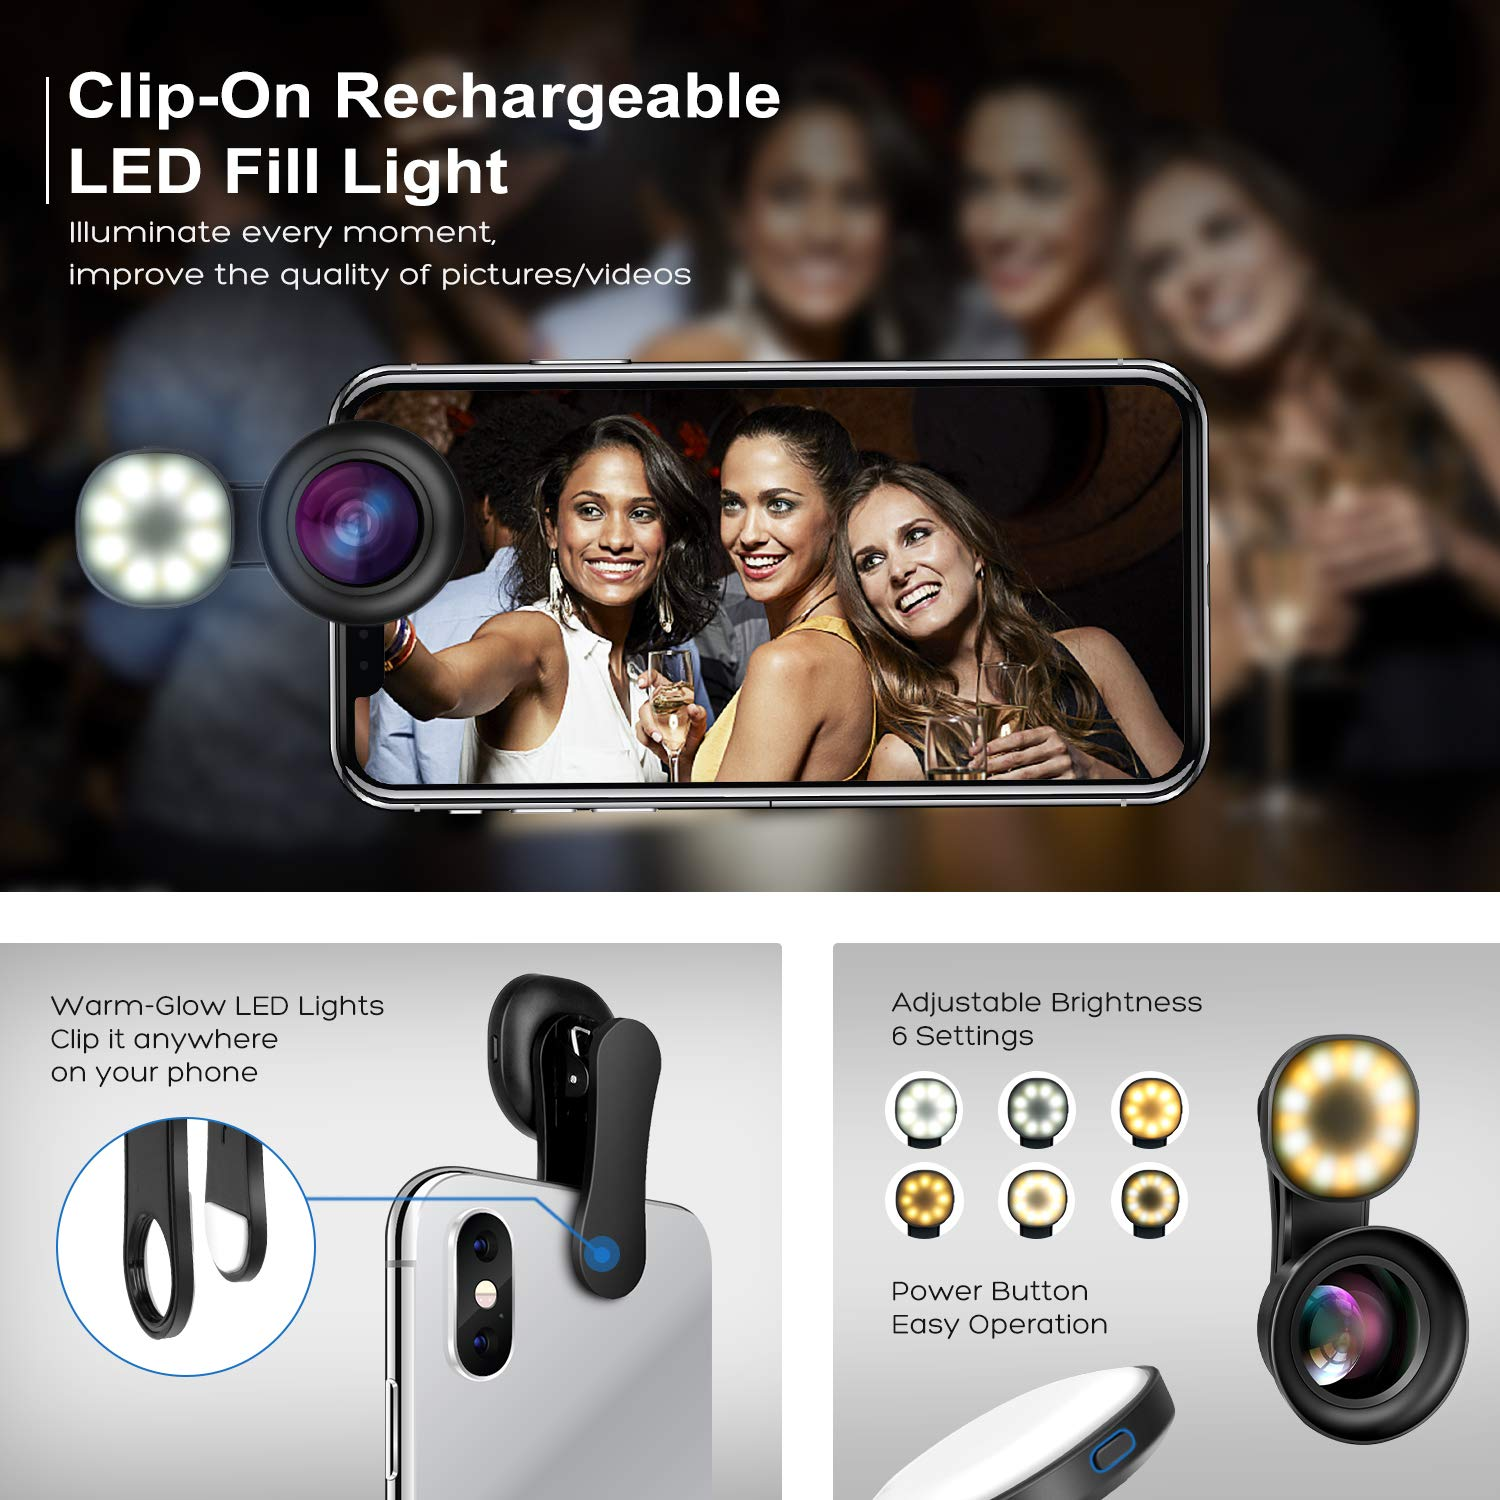 Cell Phone Camera Lens Kit – VIEWOW 4K HD 7 Optical Glasses 15X Macro 0.45X Wide Angle Phone Lens Kit with LED Light and Travel Case, Compatible with iPhone X/XS/8/7 Plus Samsung Pixel by VIEWOW (Image #3)